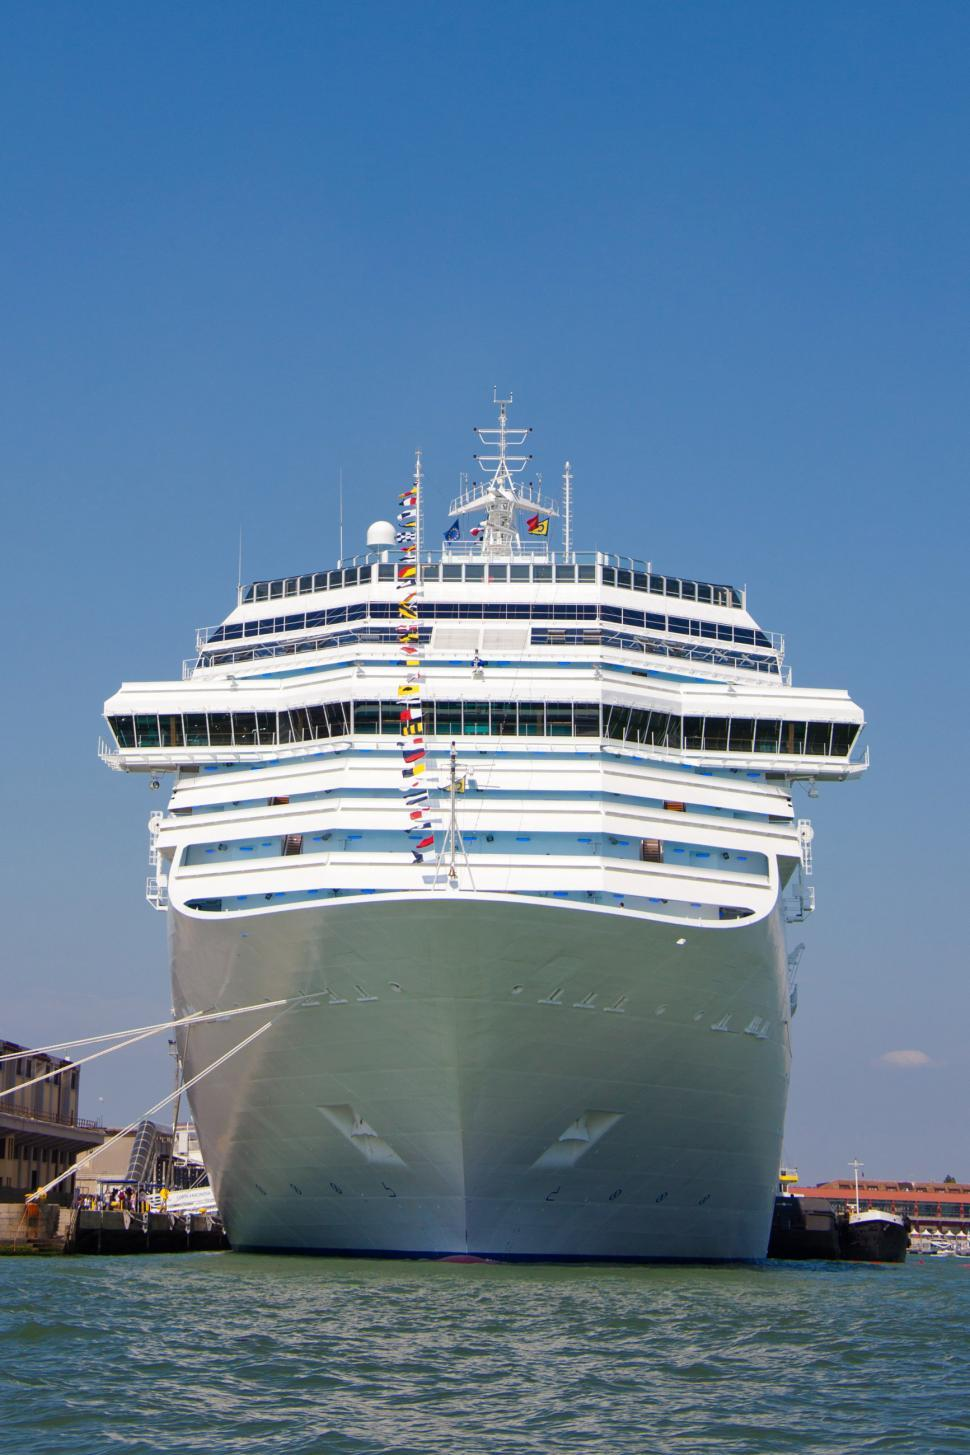 Download Free Stock HD Photo of Cruise ship in port Online